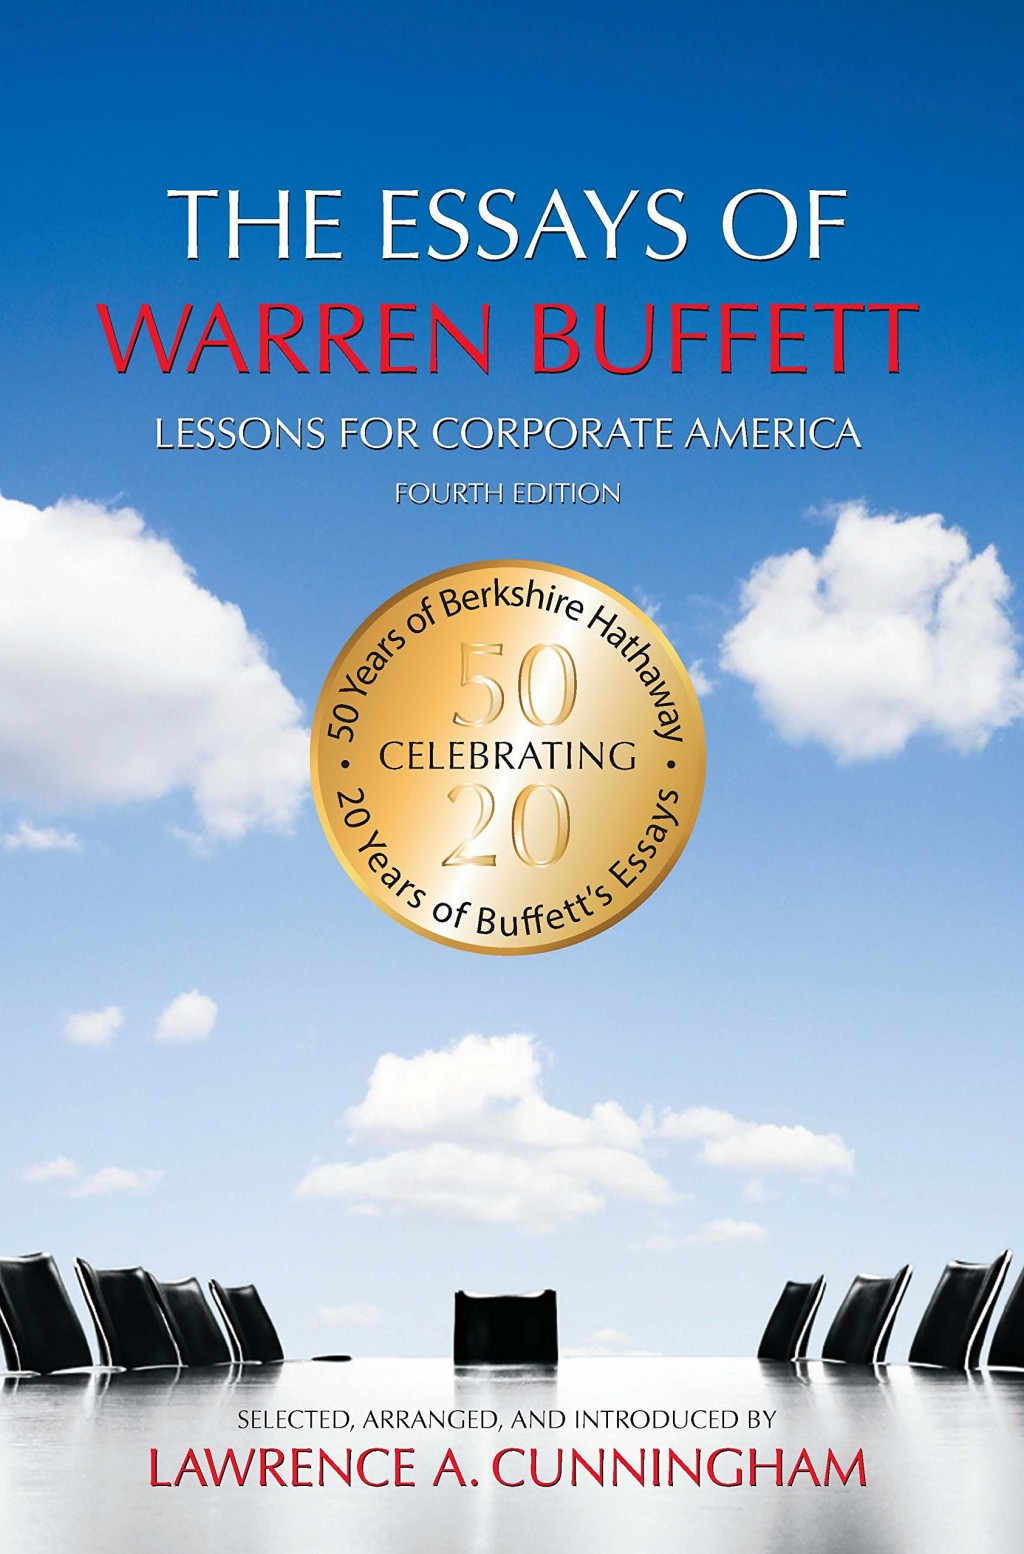 001 Essay Example The Essays Of Warren Buffett Stirring Pages Audiobook Download Summary Large